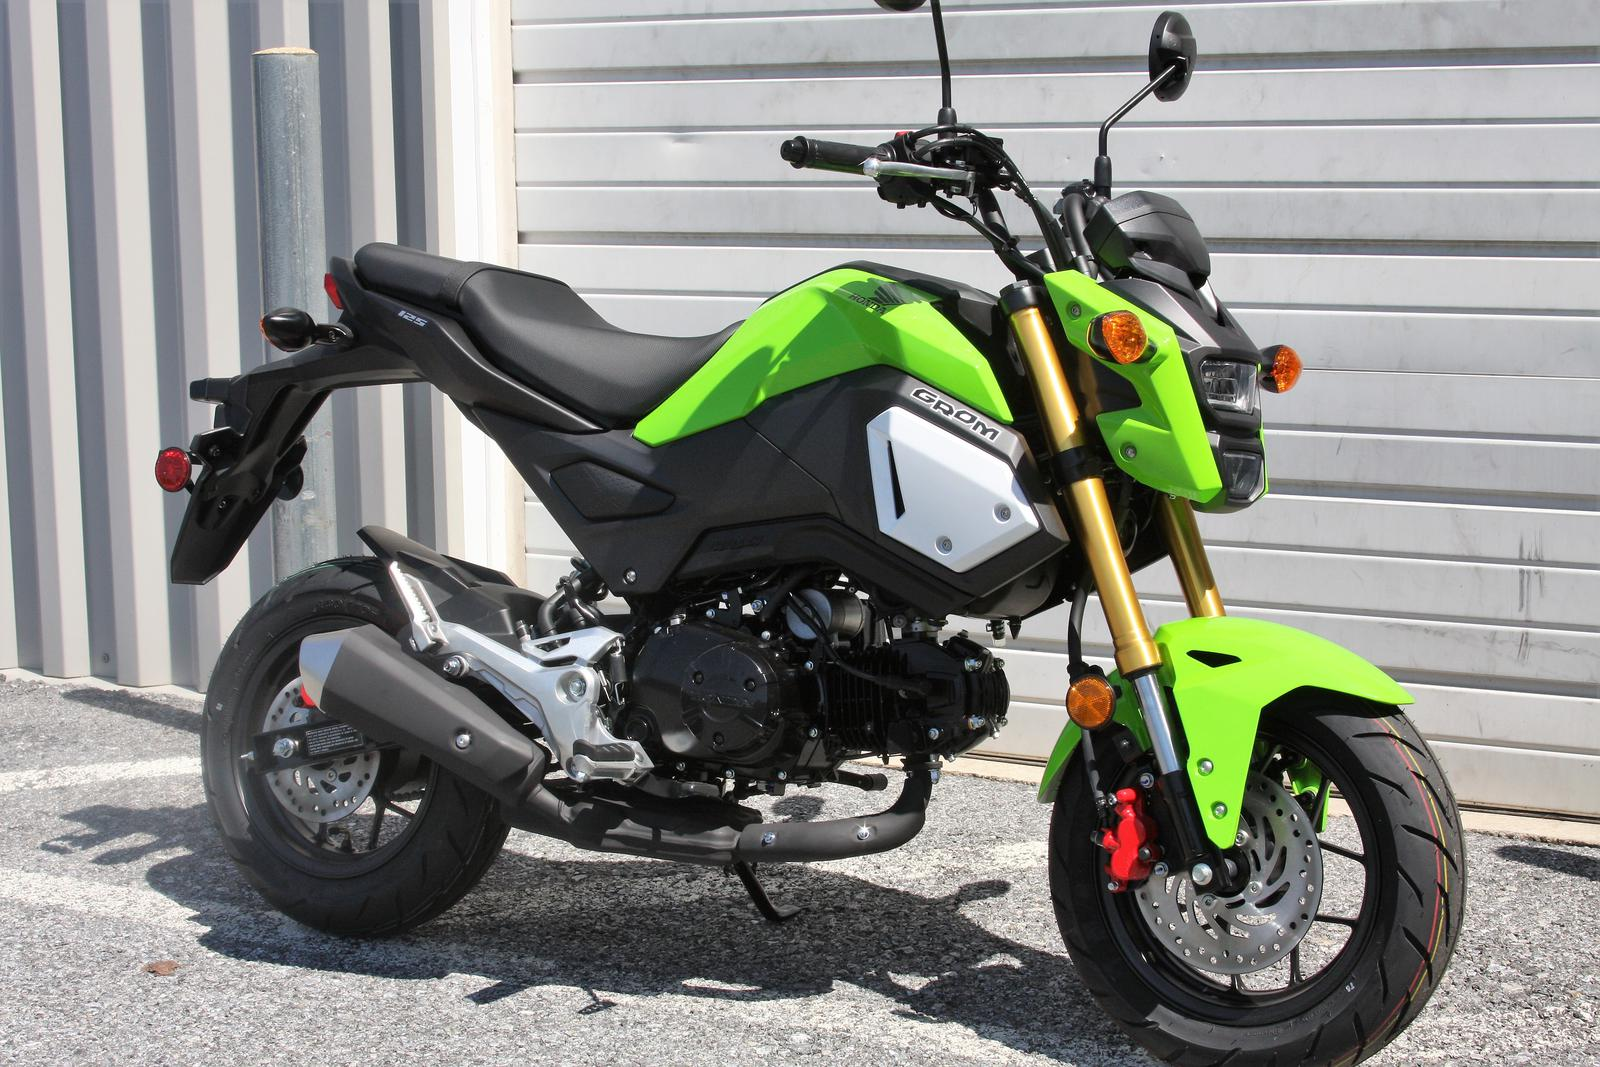 2019 Honda Grom 125 For Sale In York Pa Ams Action Motorsports